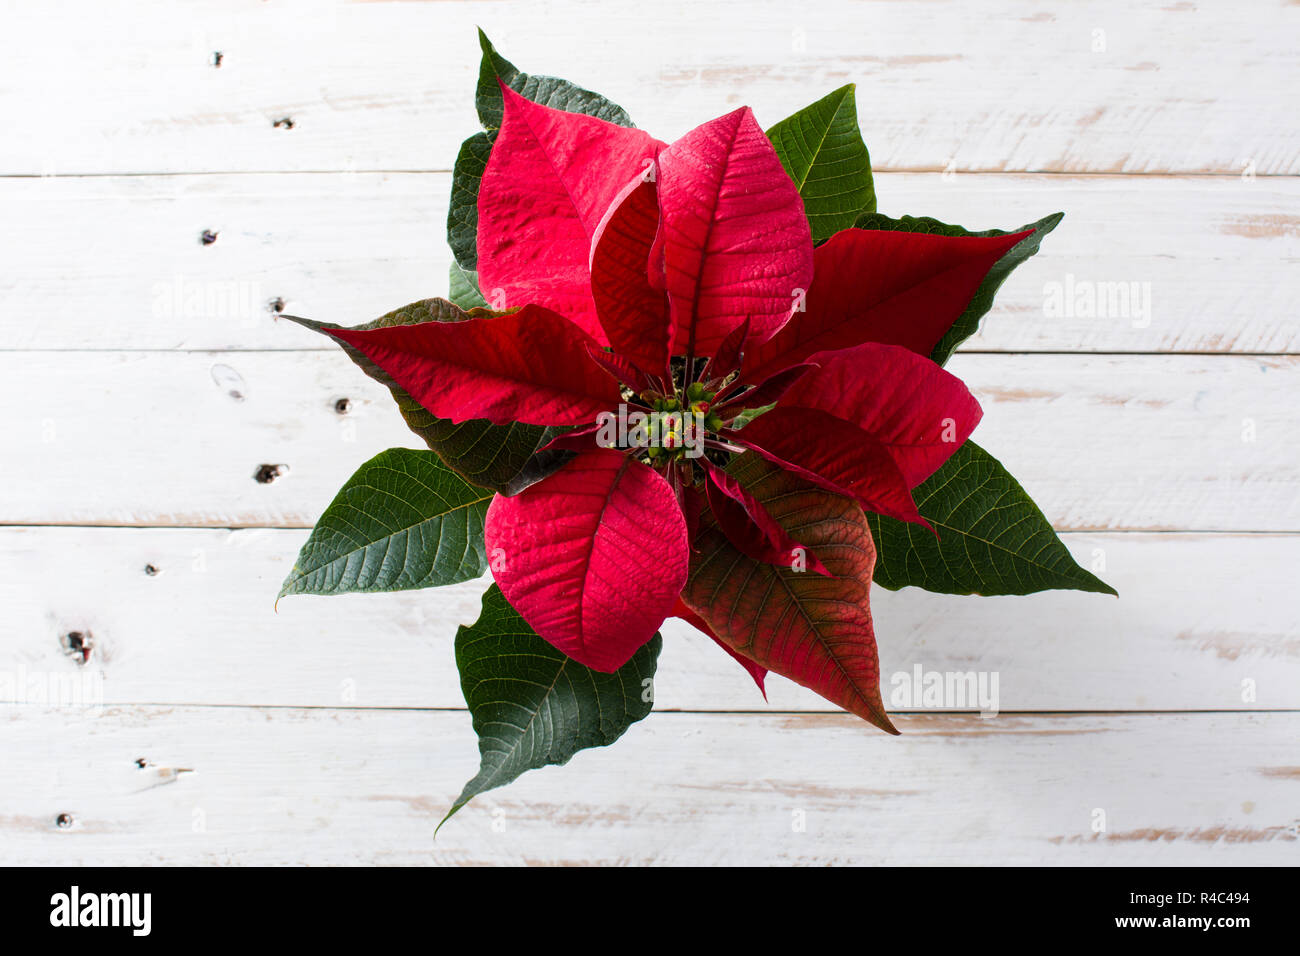 Christmas poinsettia flower on white wooden table. Top view. - Stock Image